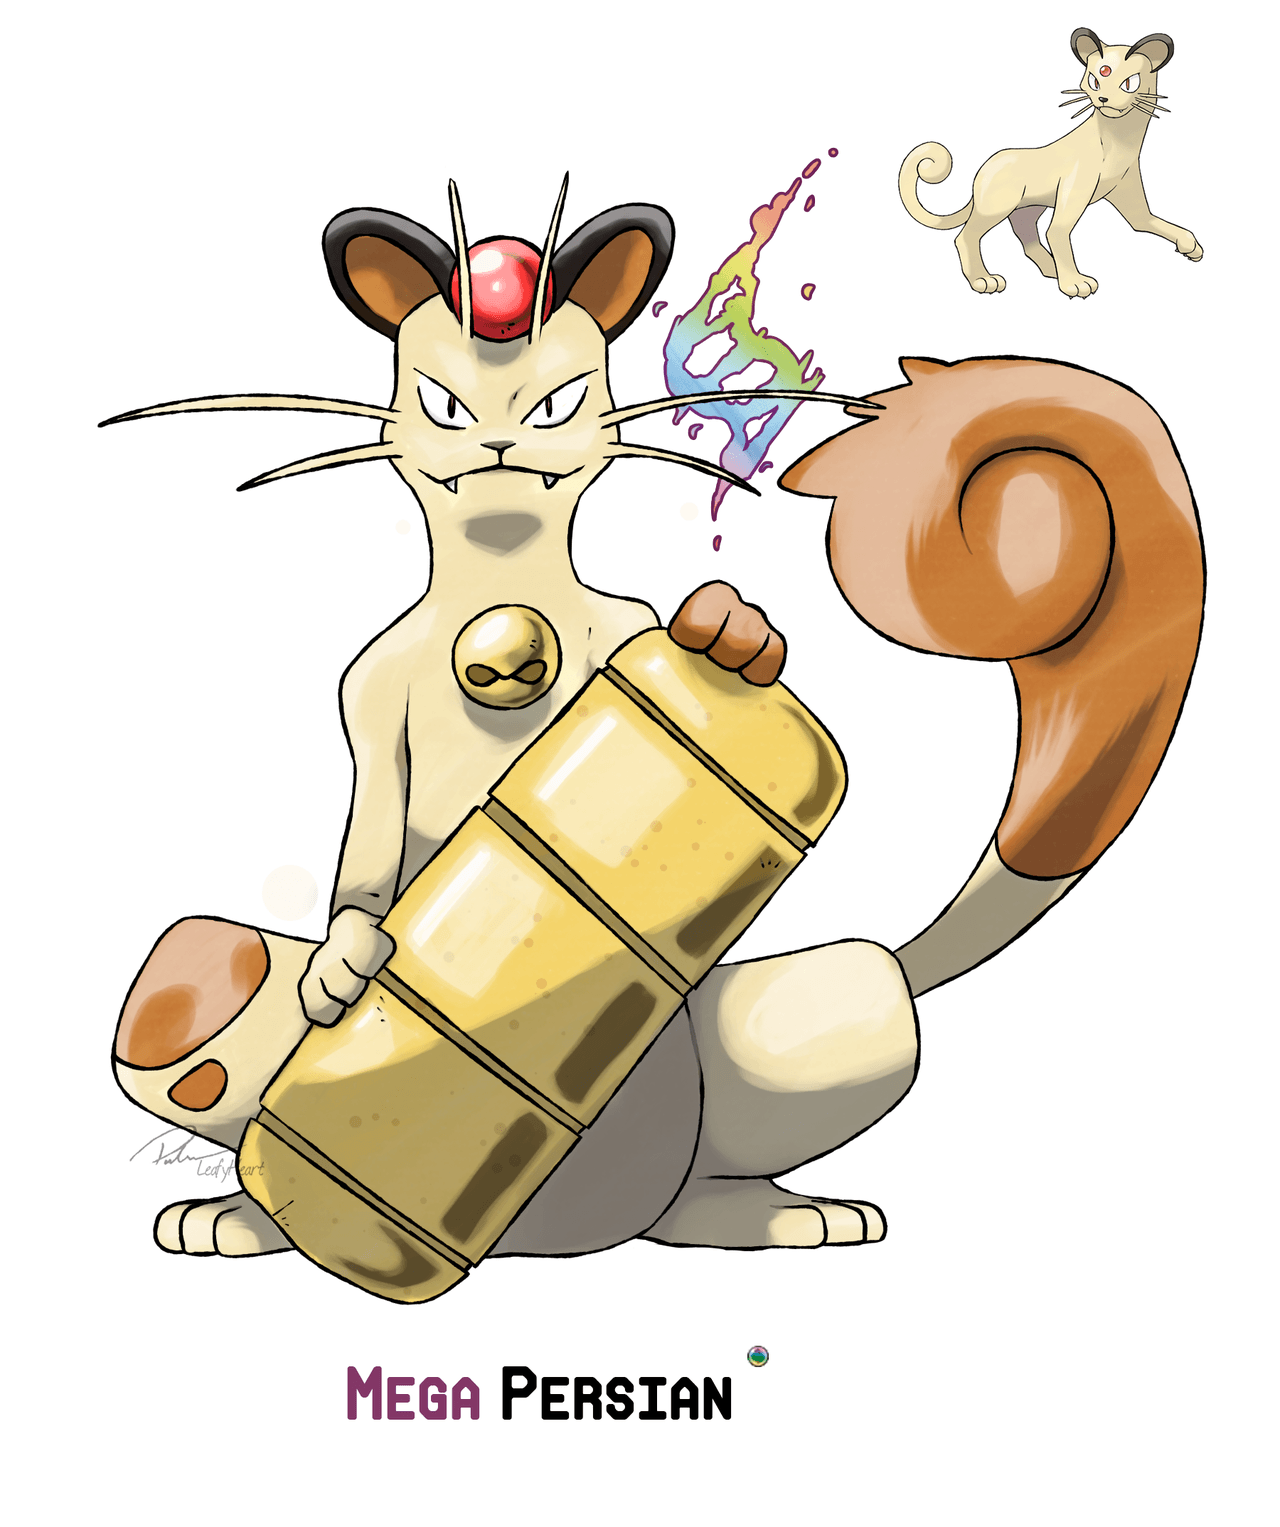 Mega Persian by LeafyHeart on DeviantArt